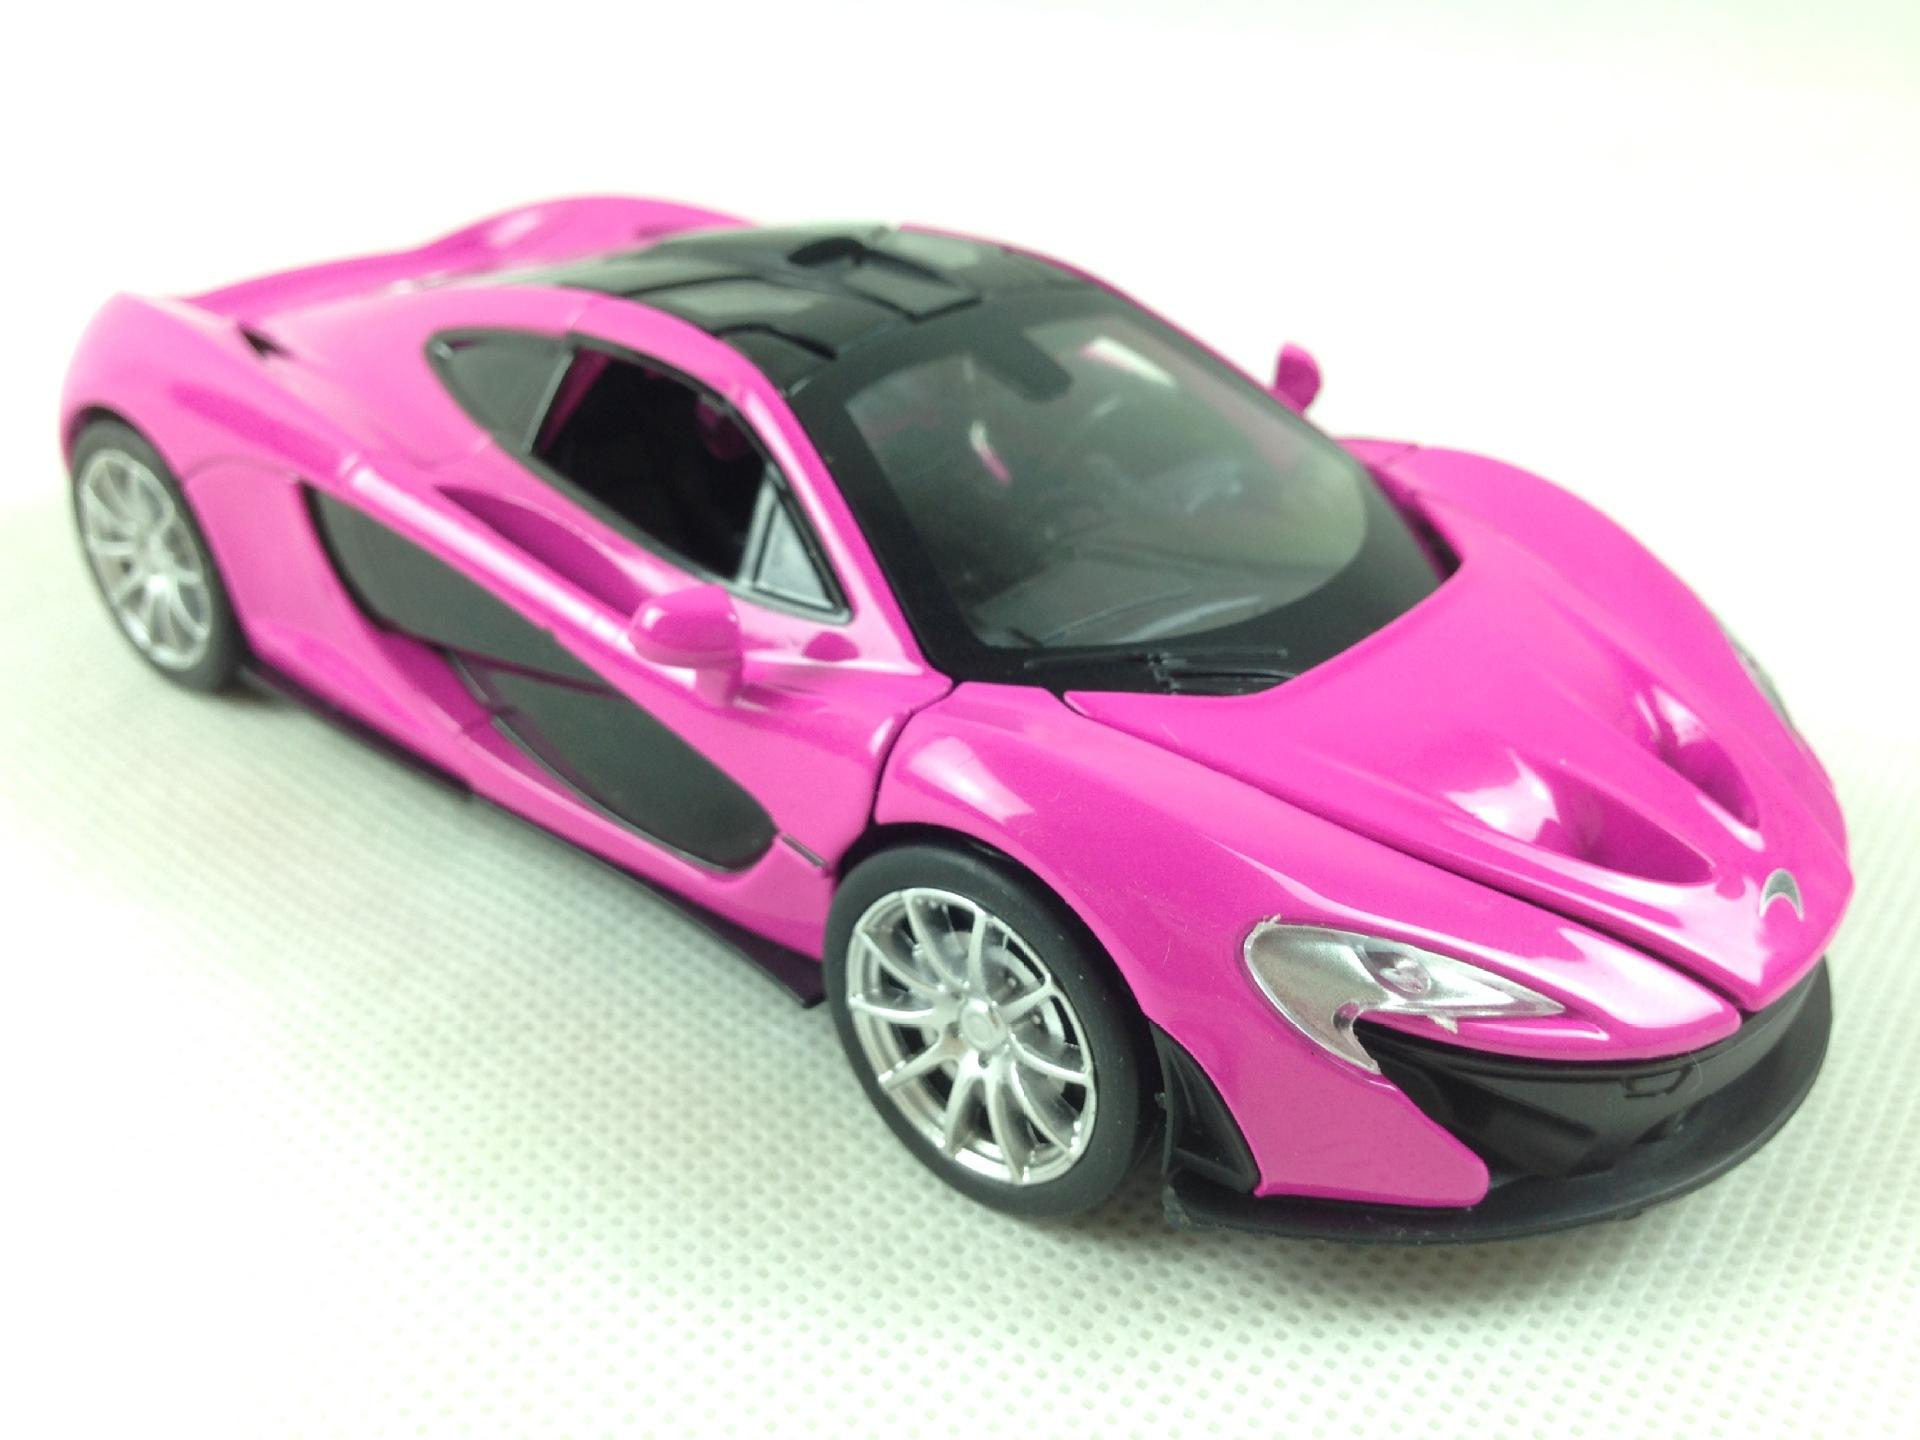 132 mclaren super car model alloy diecast car toy high quality model car with sound and light 3 colors for your choice